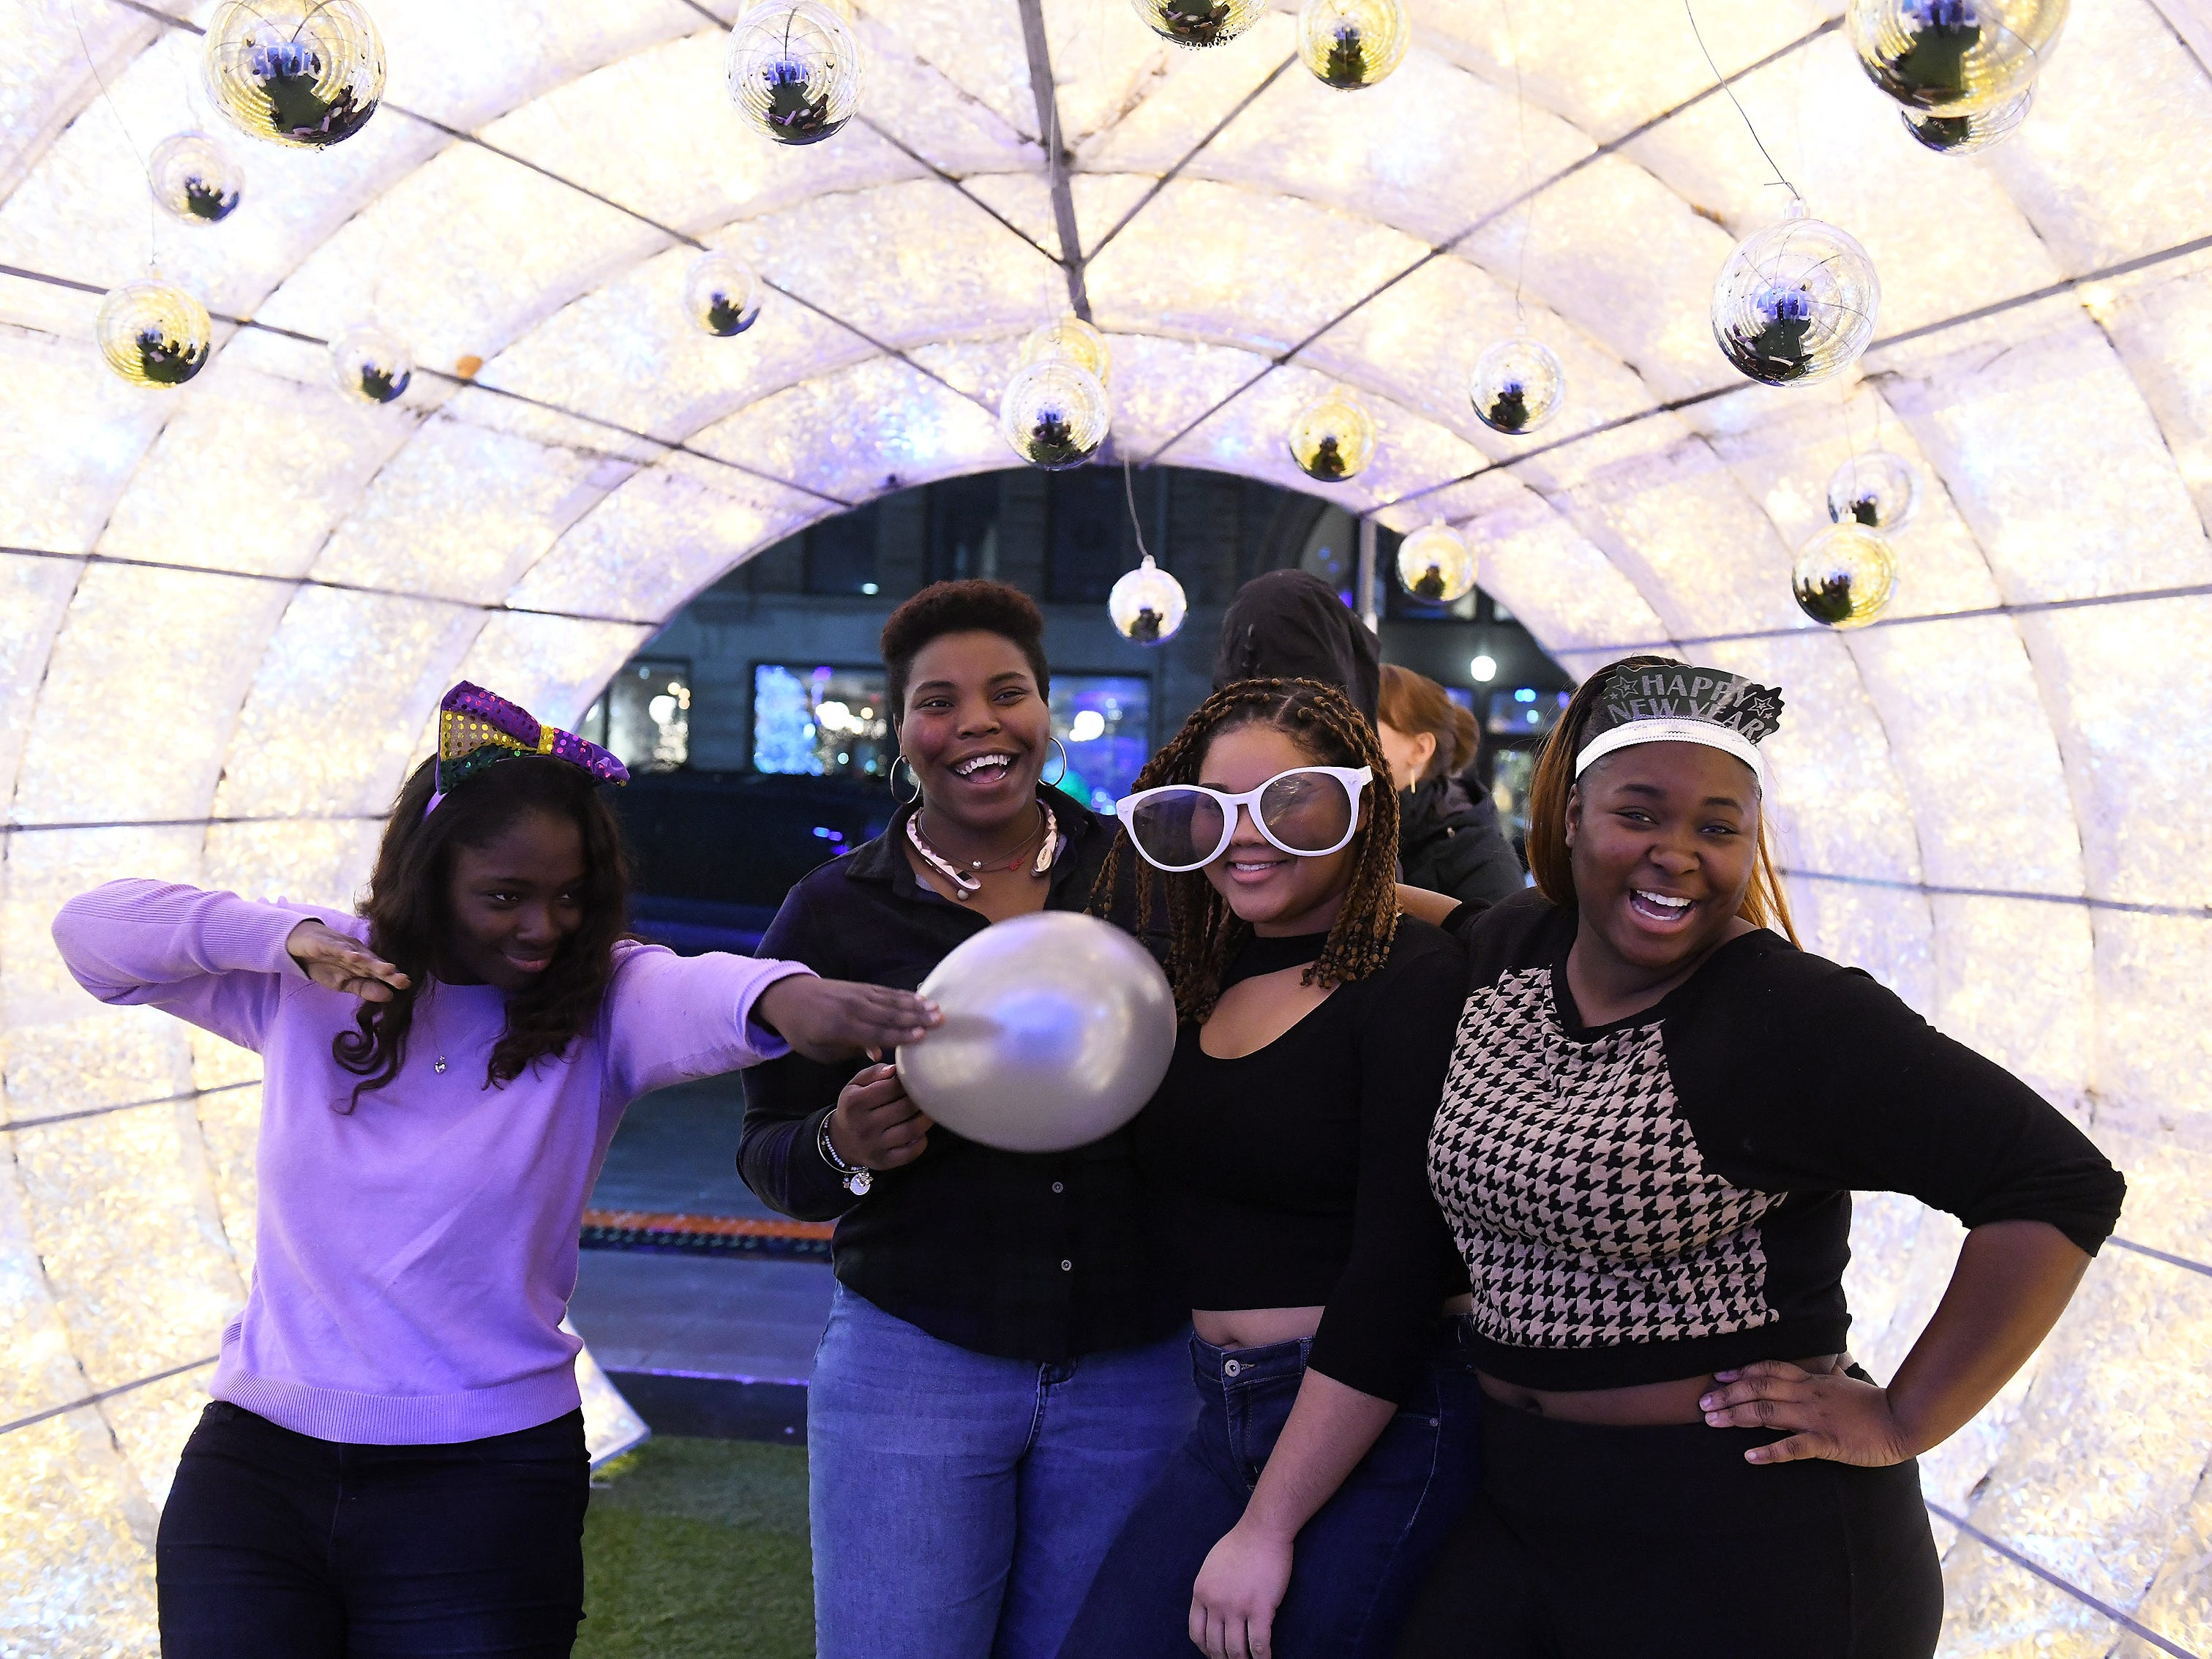 From left, Khadi Badiane, 19, Reaghan Woodfork, 19, Destiny Davis, 19, and Ophelia Joseph, 19, of Grosse Pointe pose for photos at the New Year's Eve Kids Countdow\n.